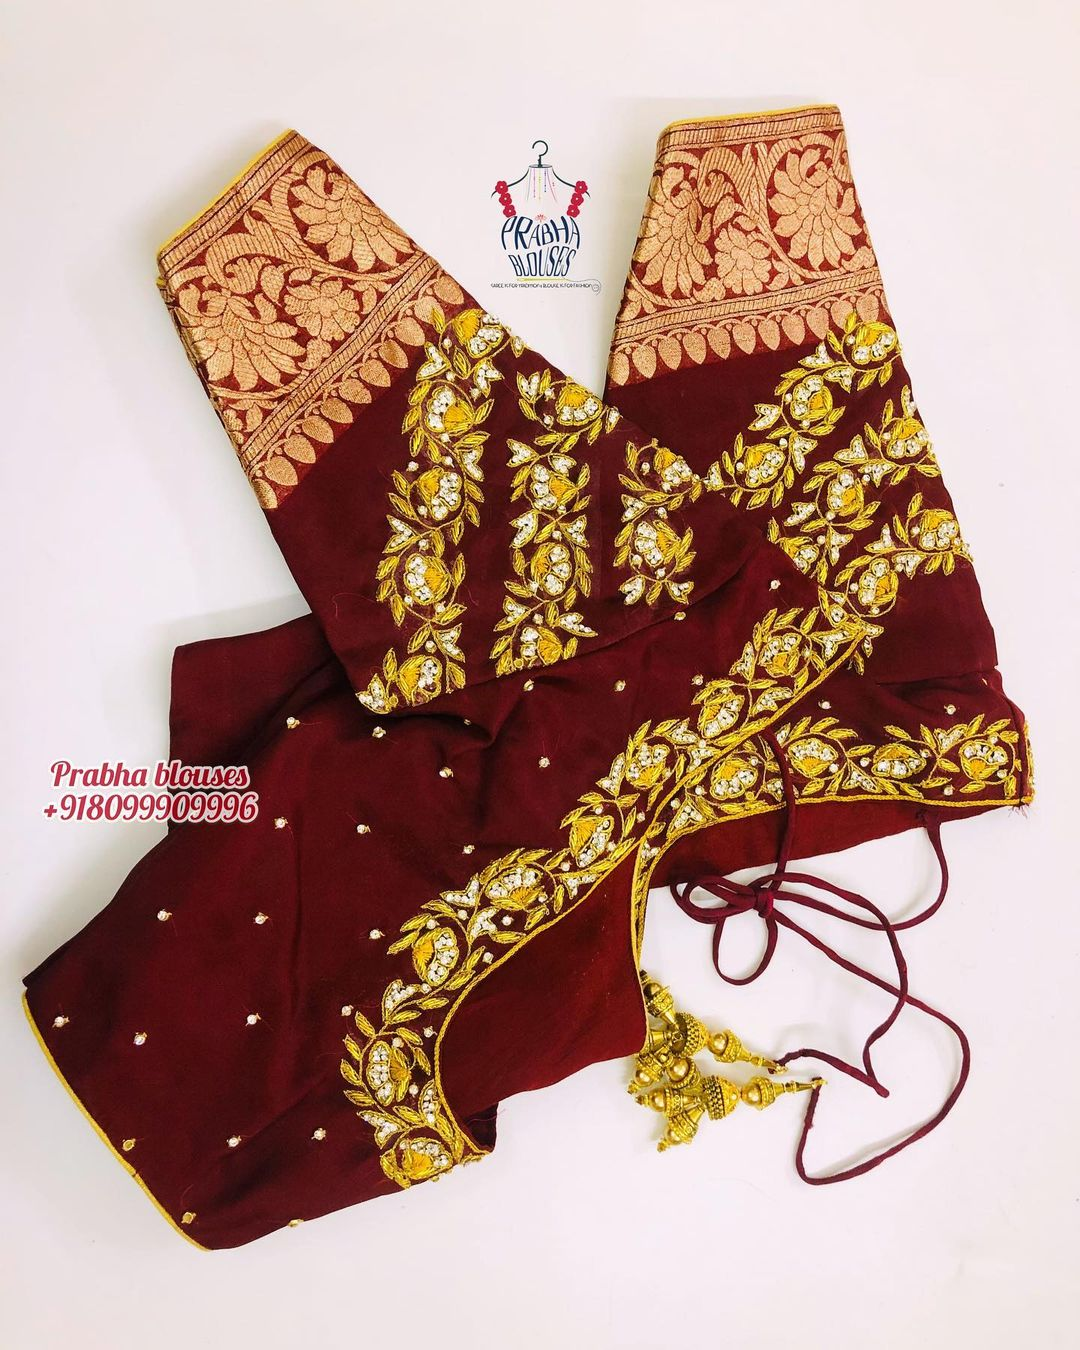 Stunning maroon color bridal blouse design with creeper gold thread and stone maggam work. 2021-06-10